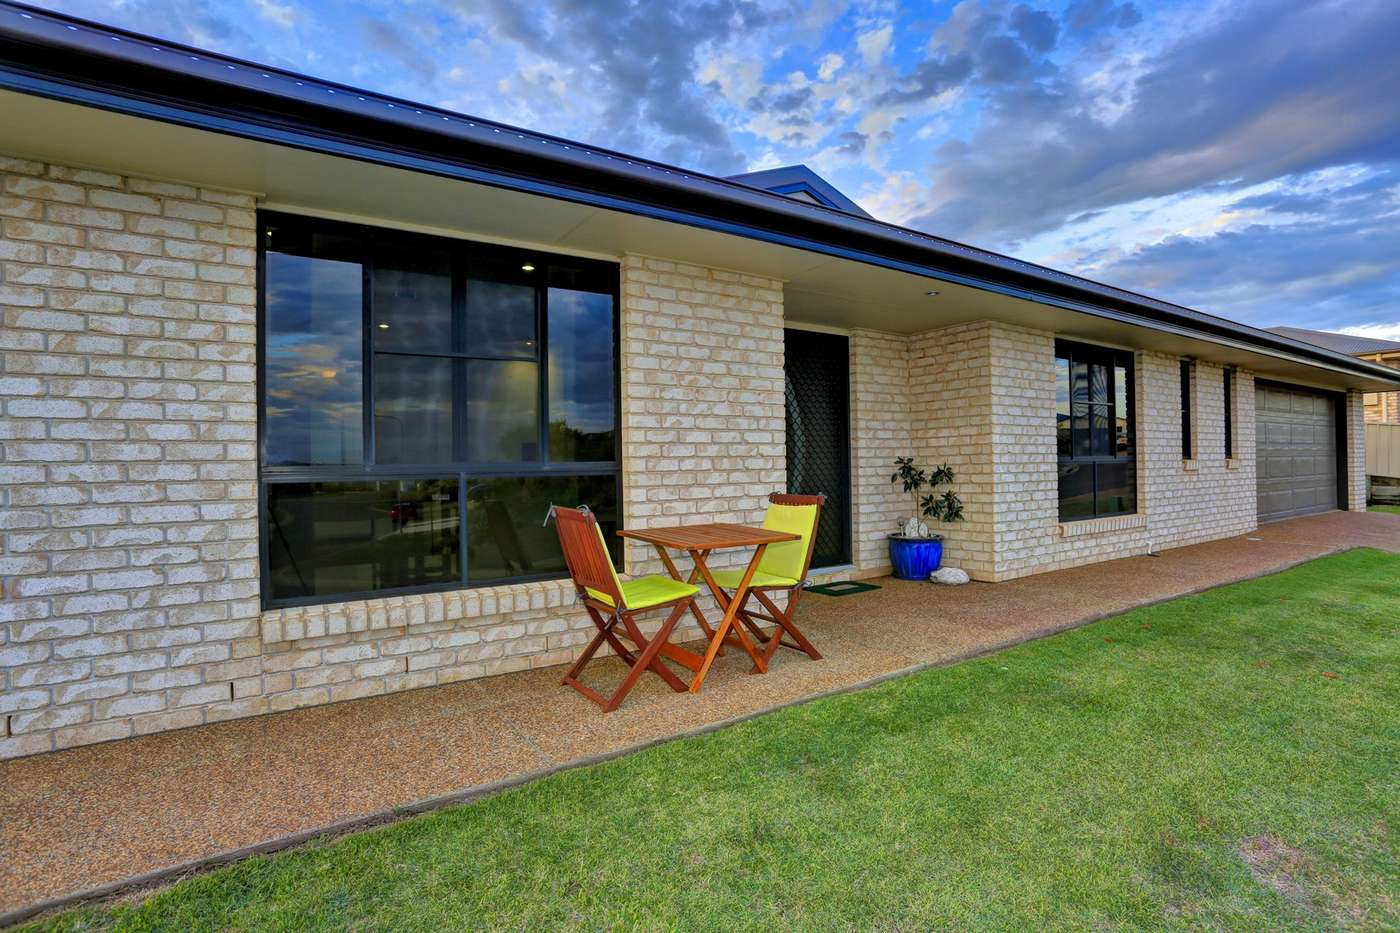 Main view of Homely house listing, 1 Outlook Court, Ashfield, QLD 4670